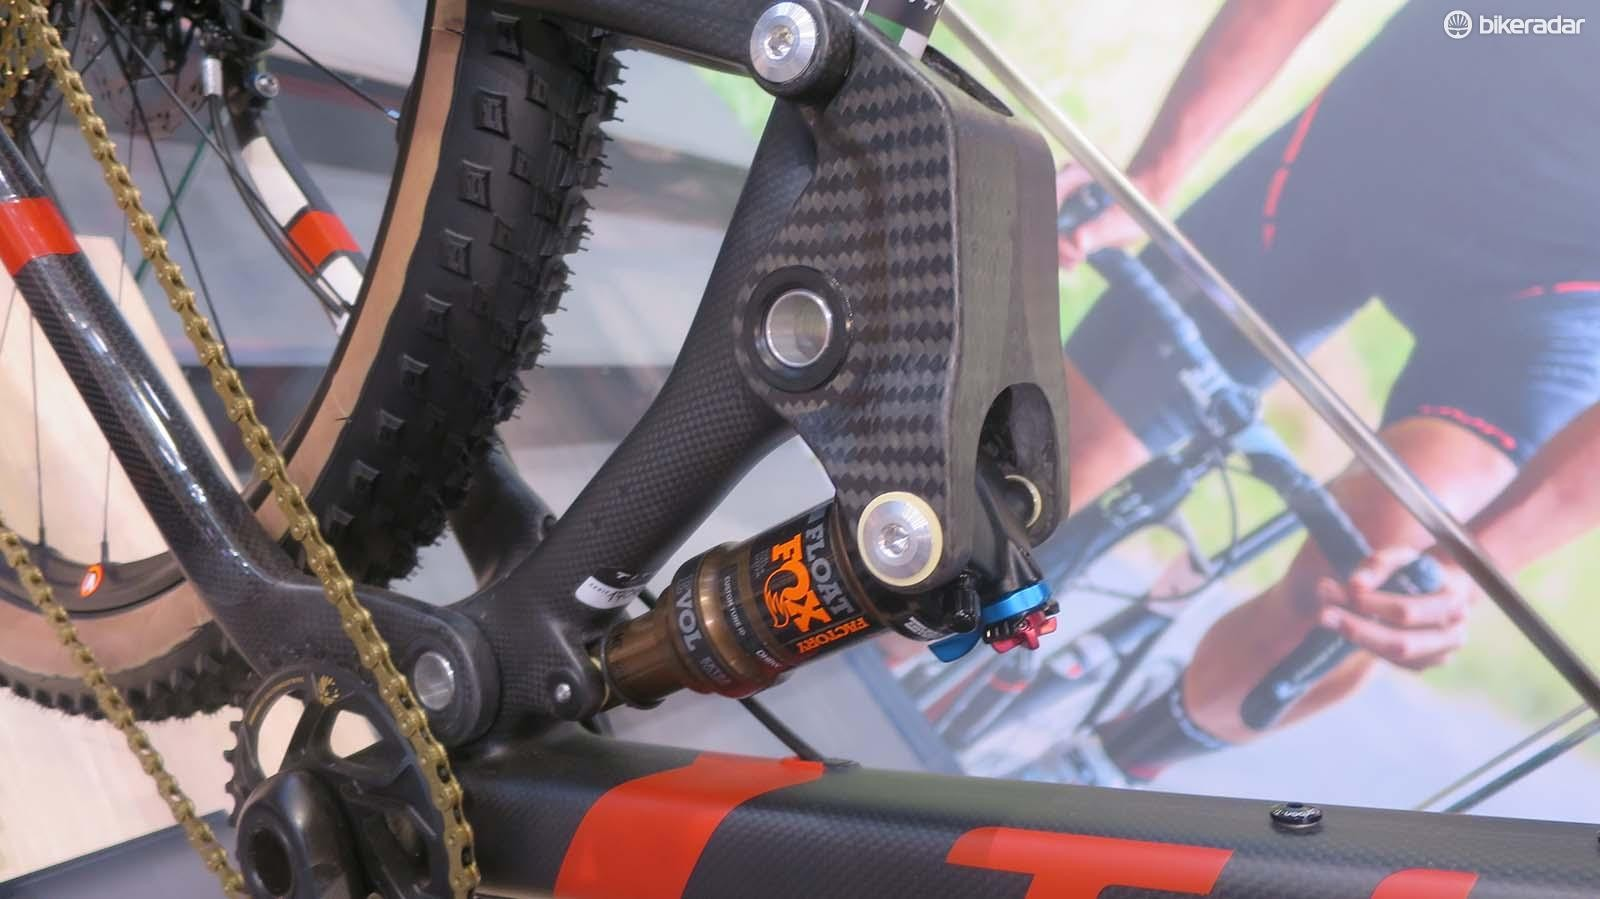 The carbon linkage looks suitably trick